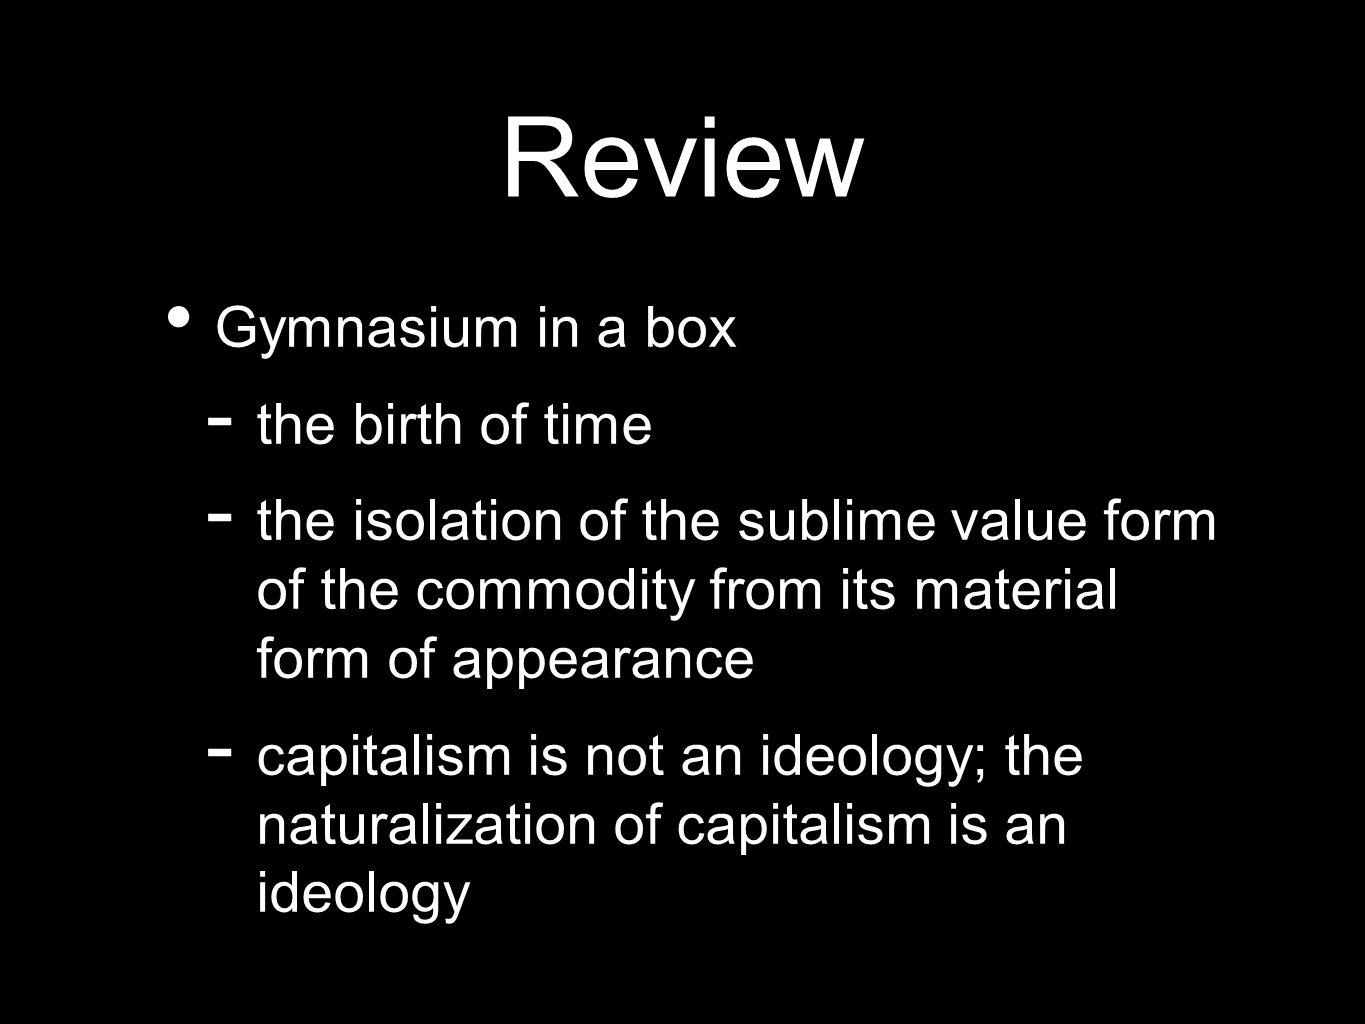 Review Gymnasium in a box - the birth of time - the isolation of the sublime value form of the commodity from its material form of appearance - capita